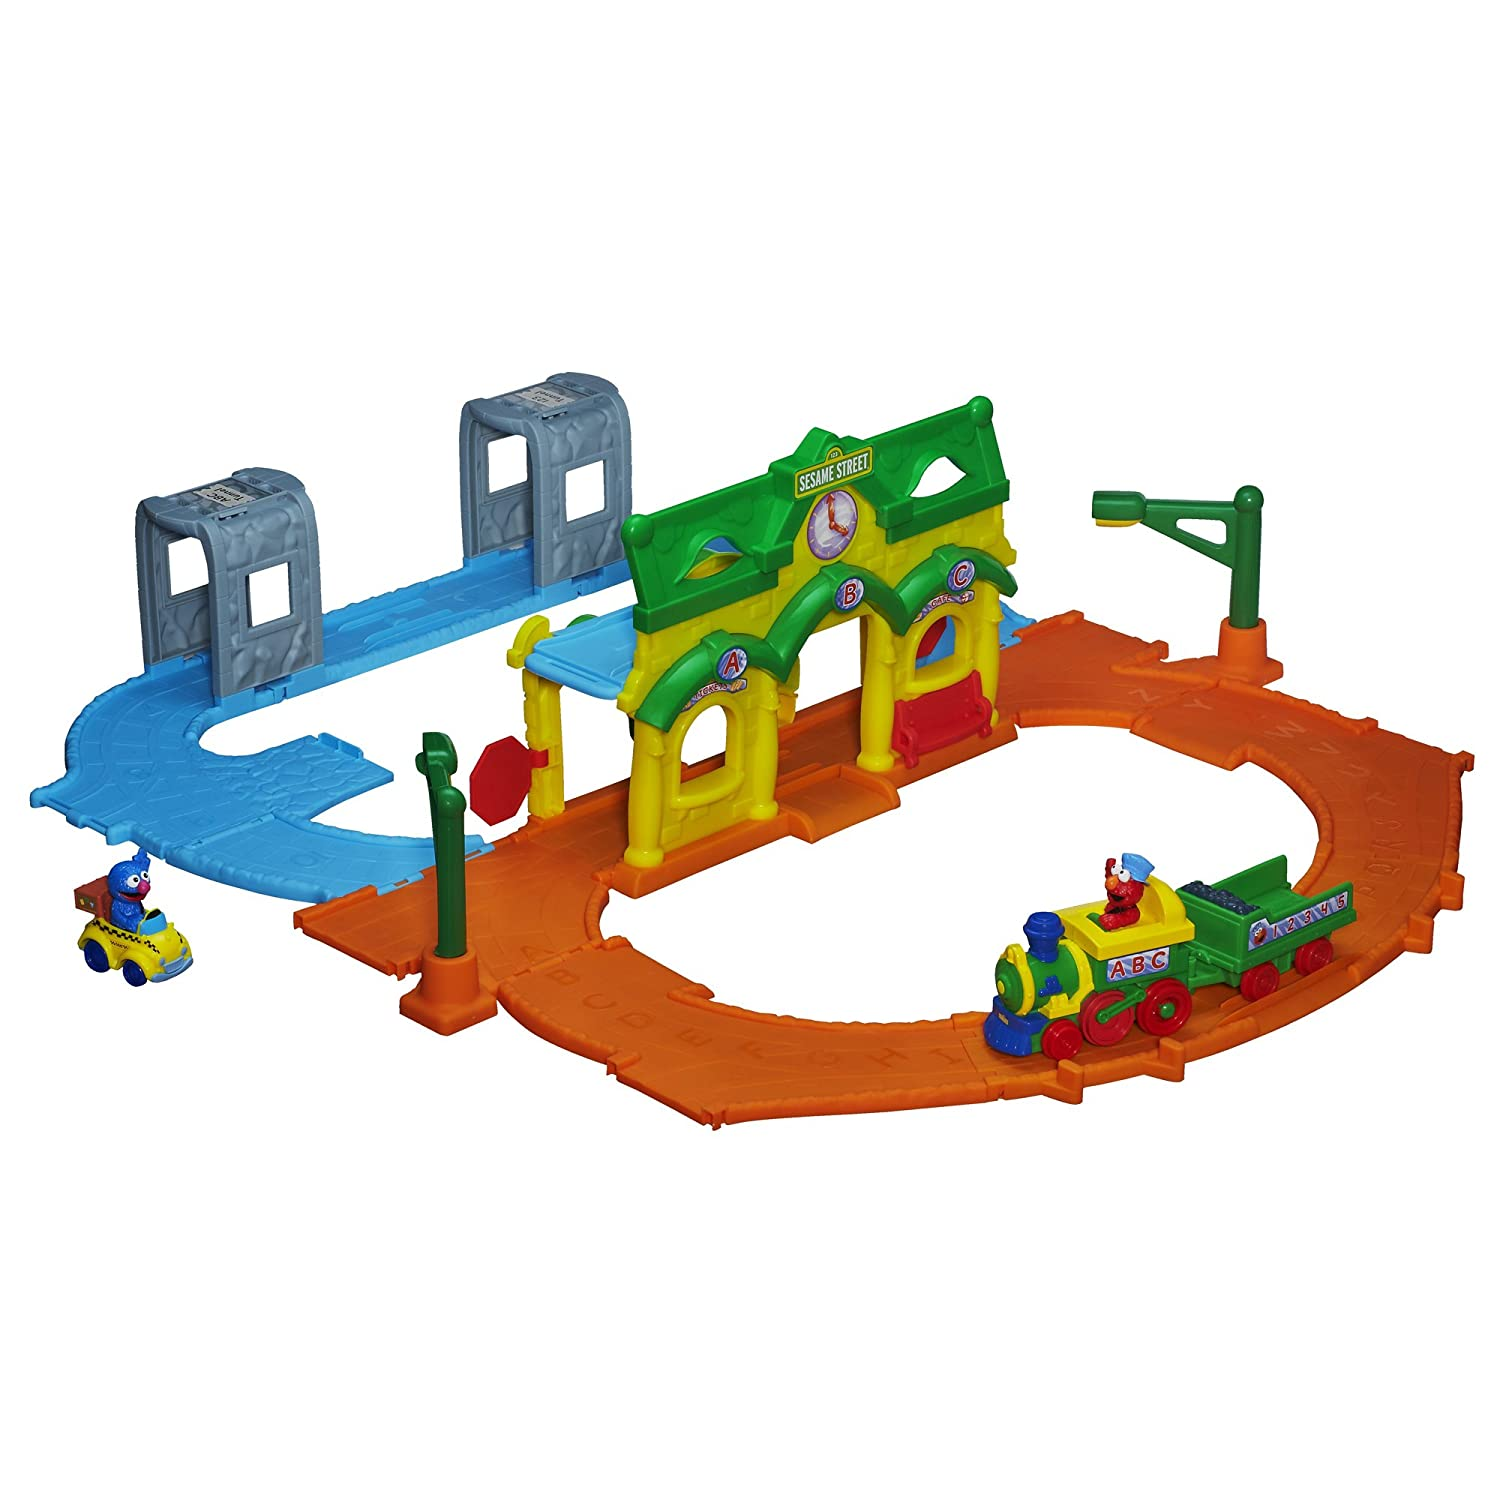 Playskool Sesame Street Elmo Junction Train Set $19.99